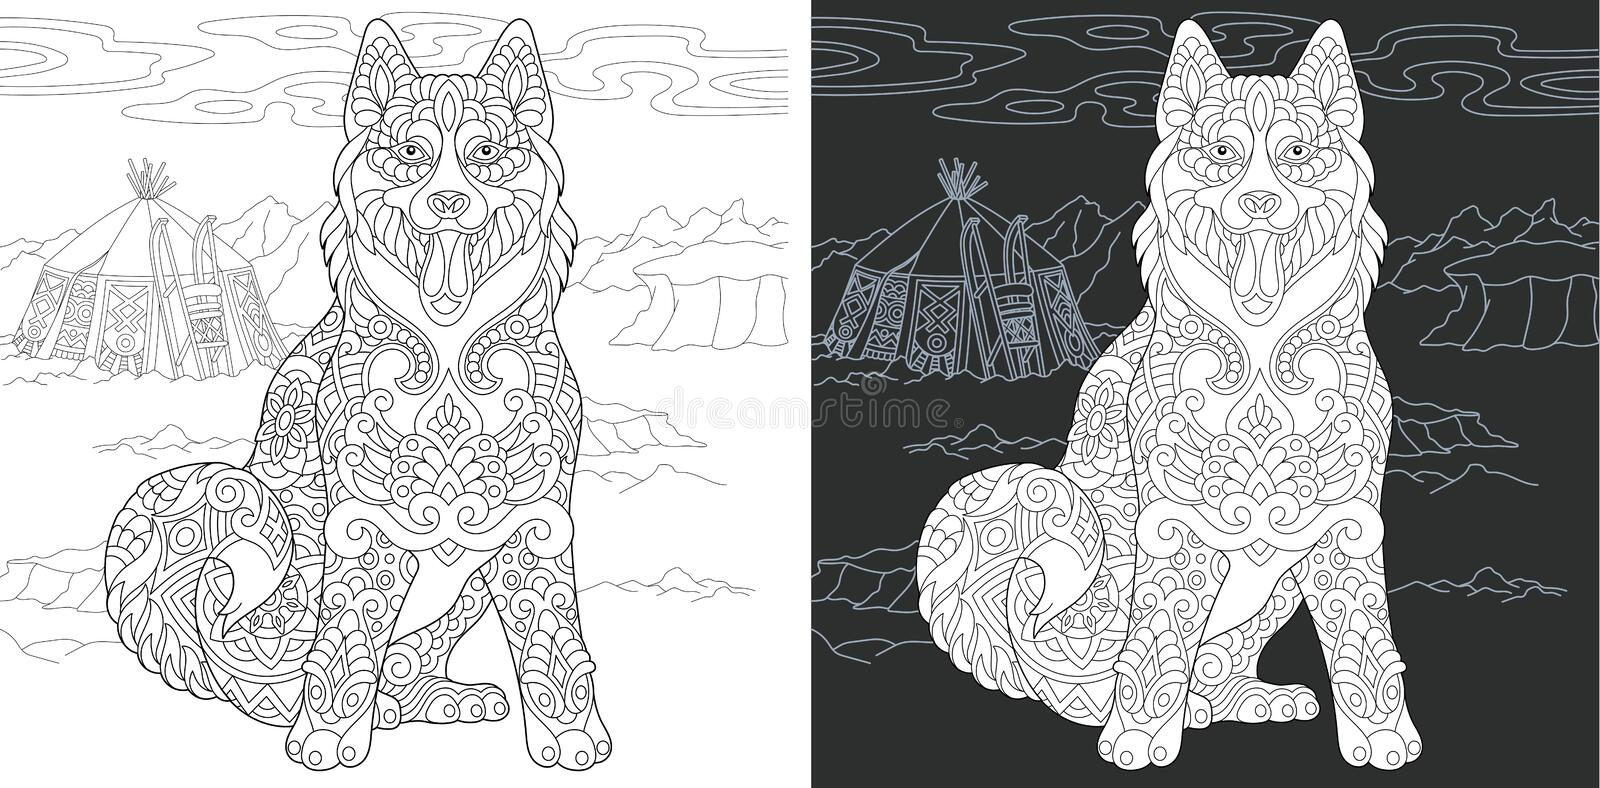 Coloring page with husky dog royalty free stock image